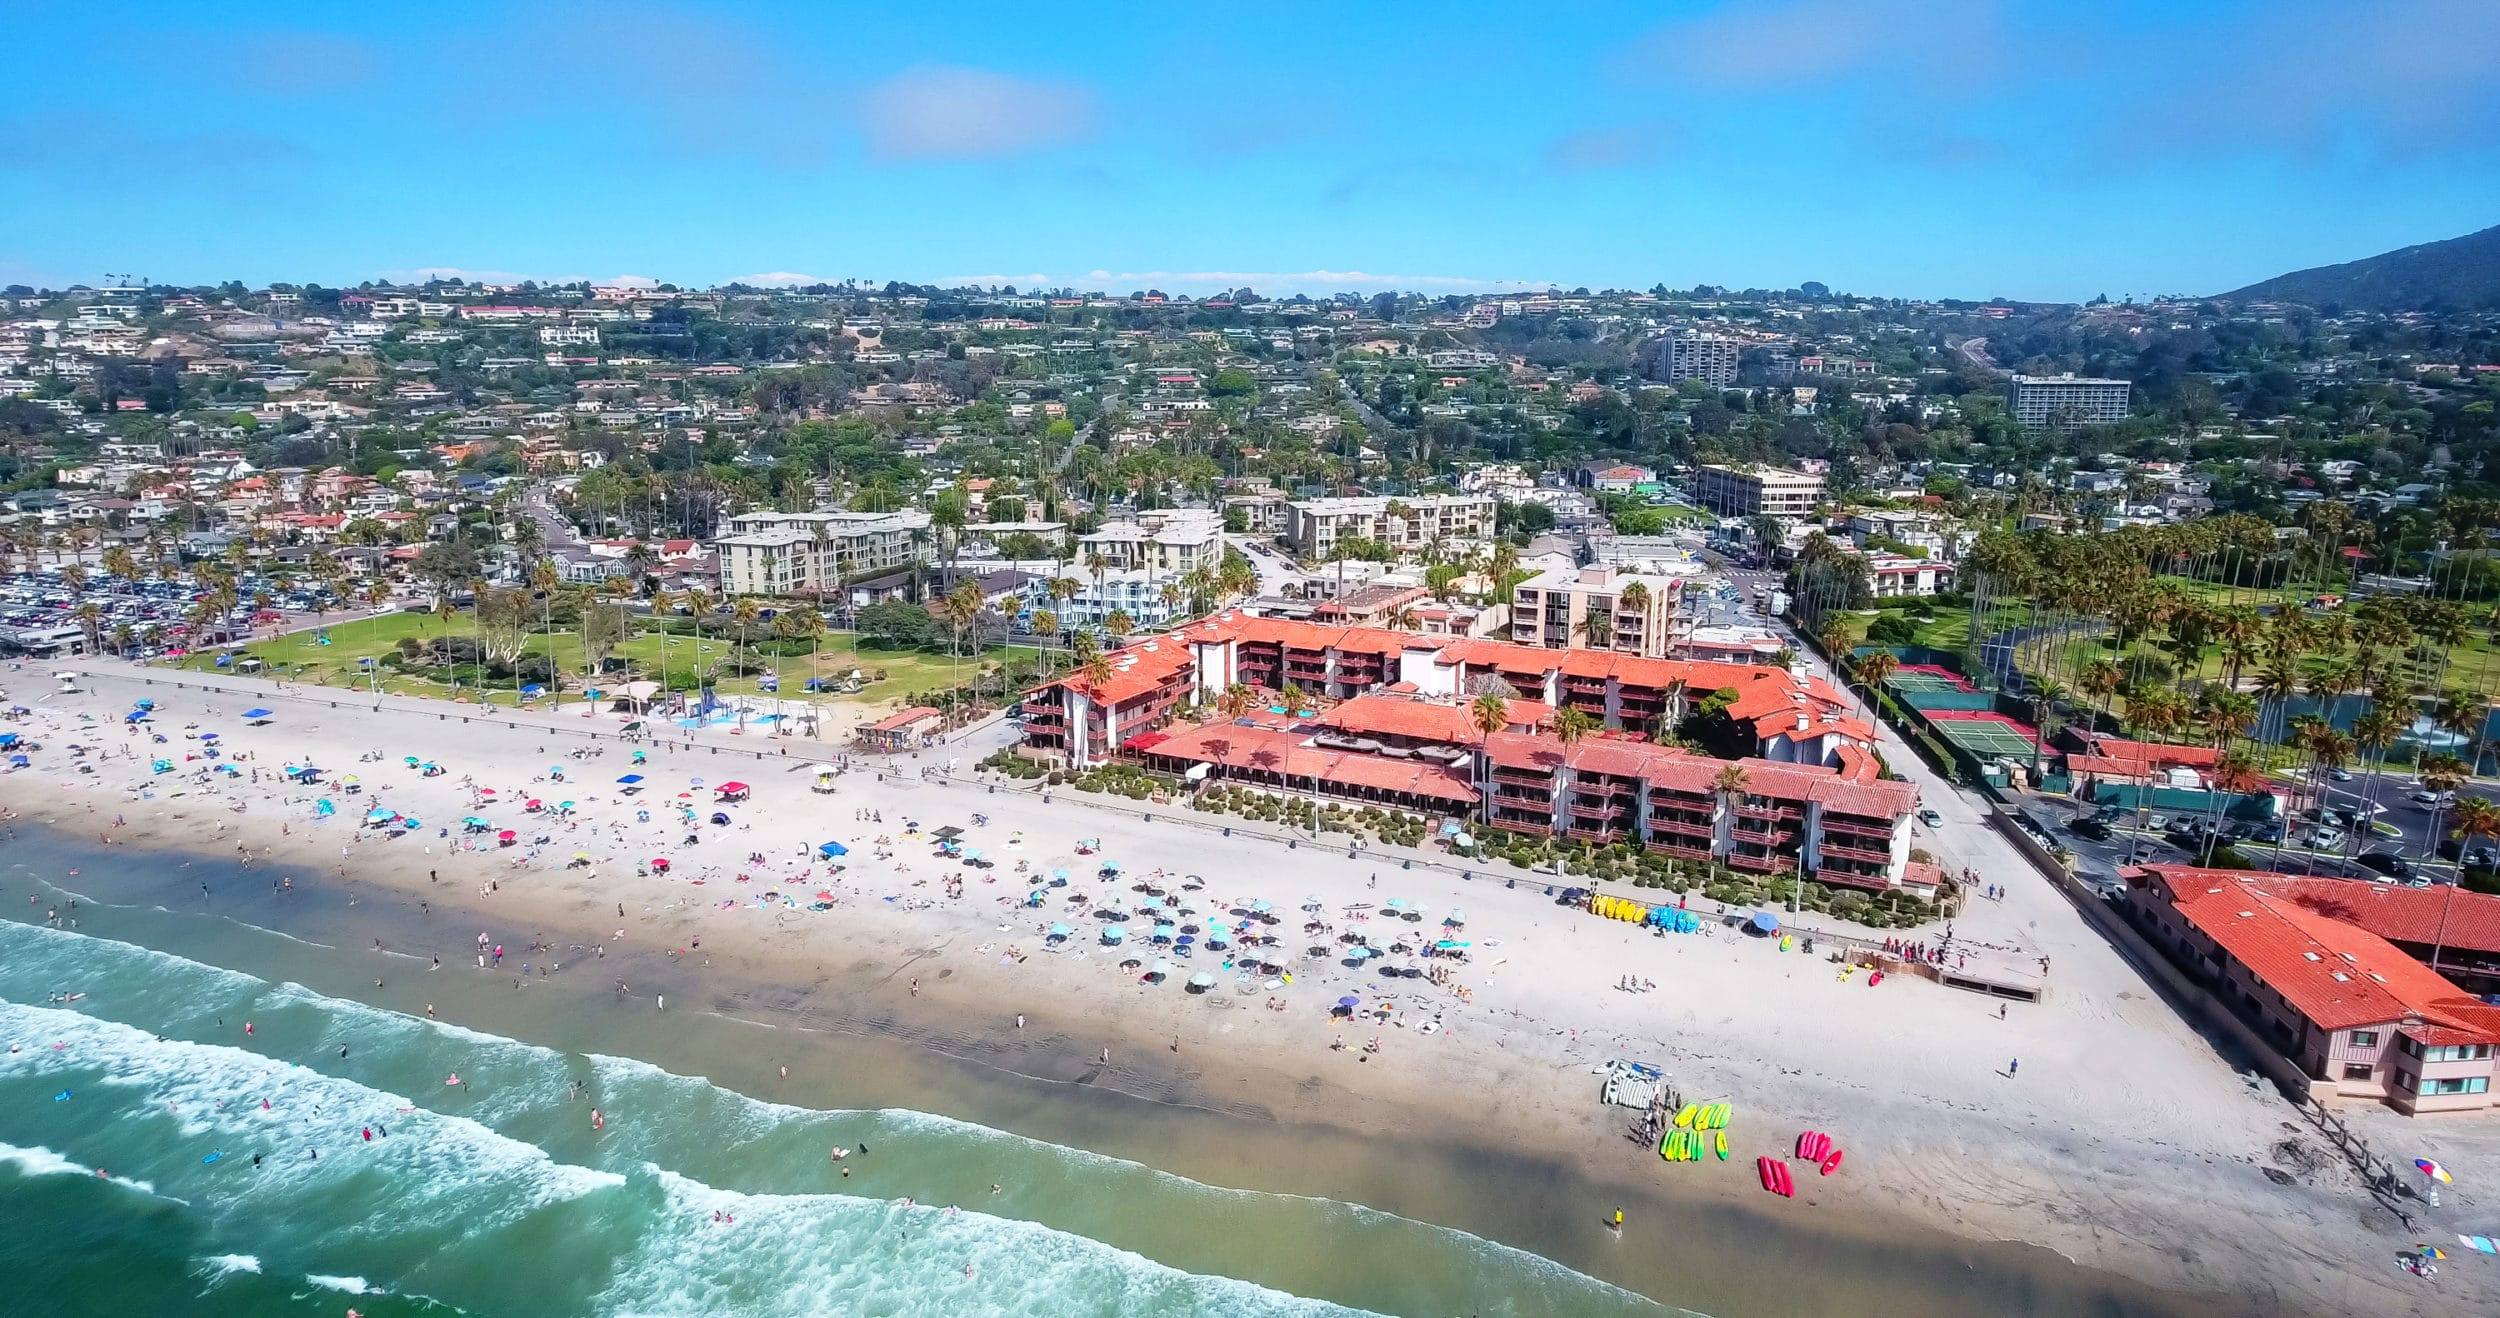 Aerial view of beachfront La Jolla Shores Hotel, a popular San Diego family hotel